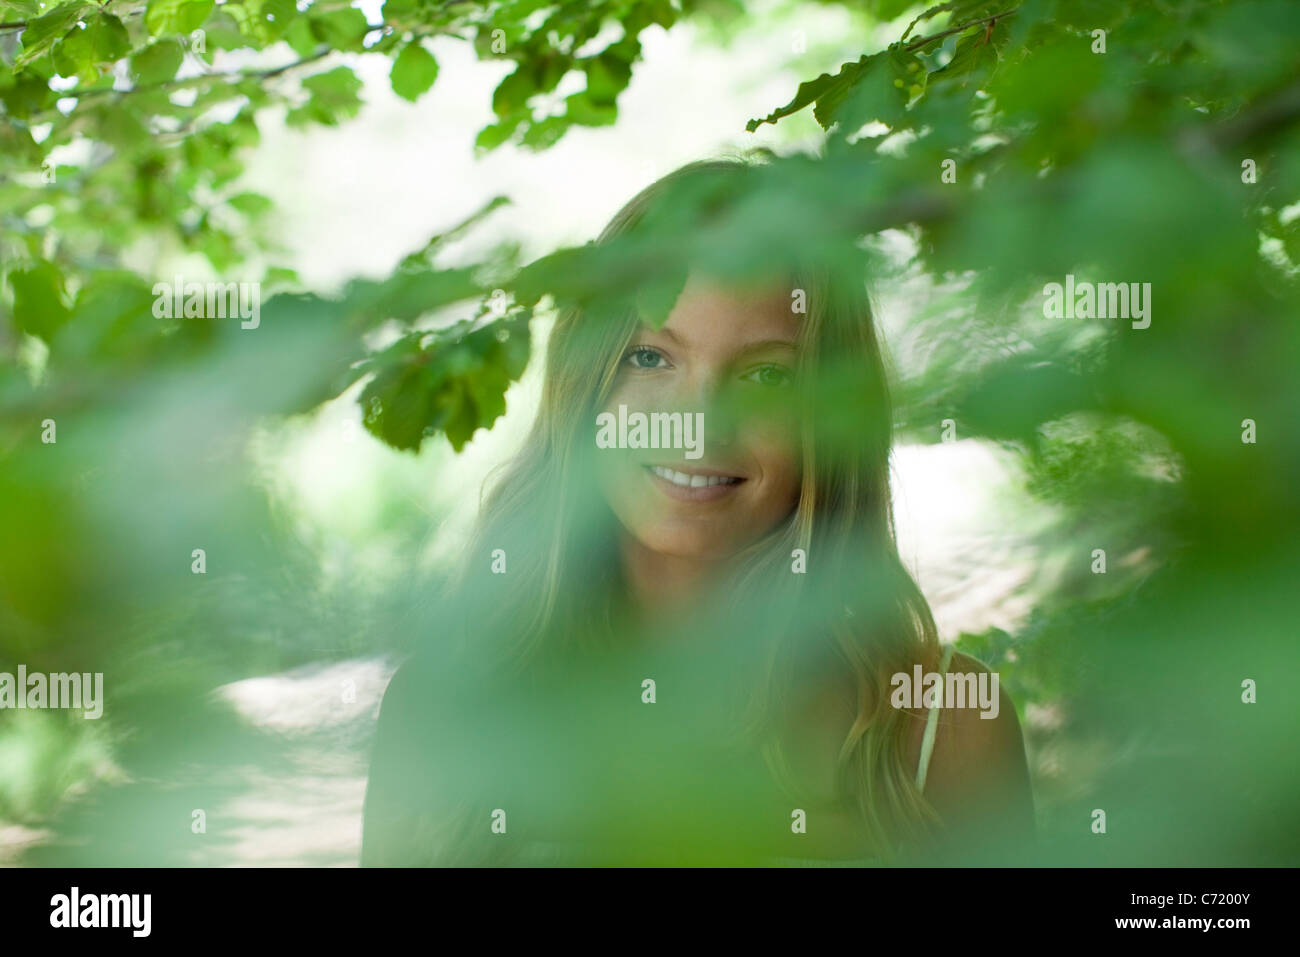 Young woman in nature, selective focus - Stock Image